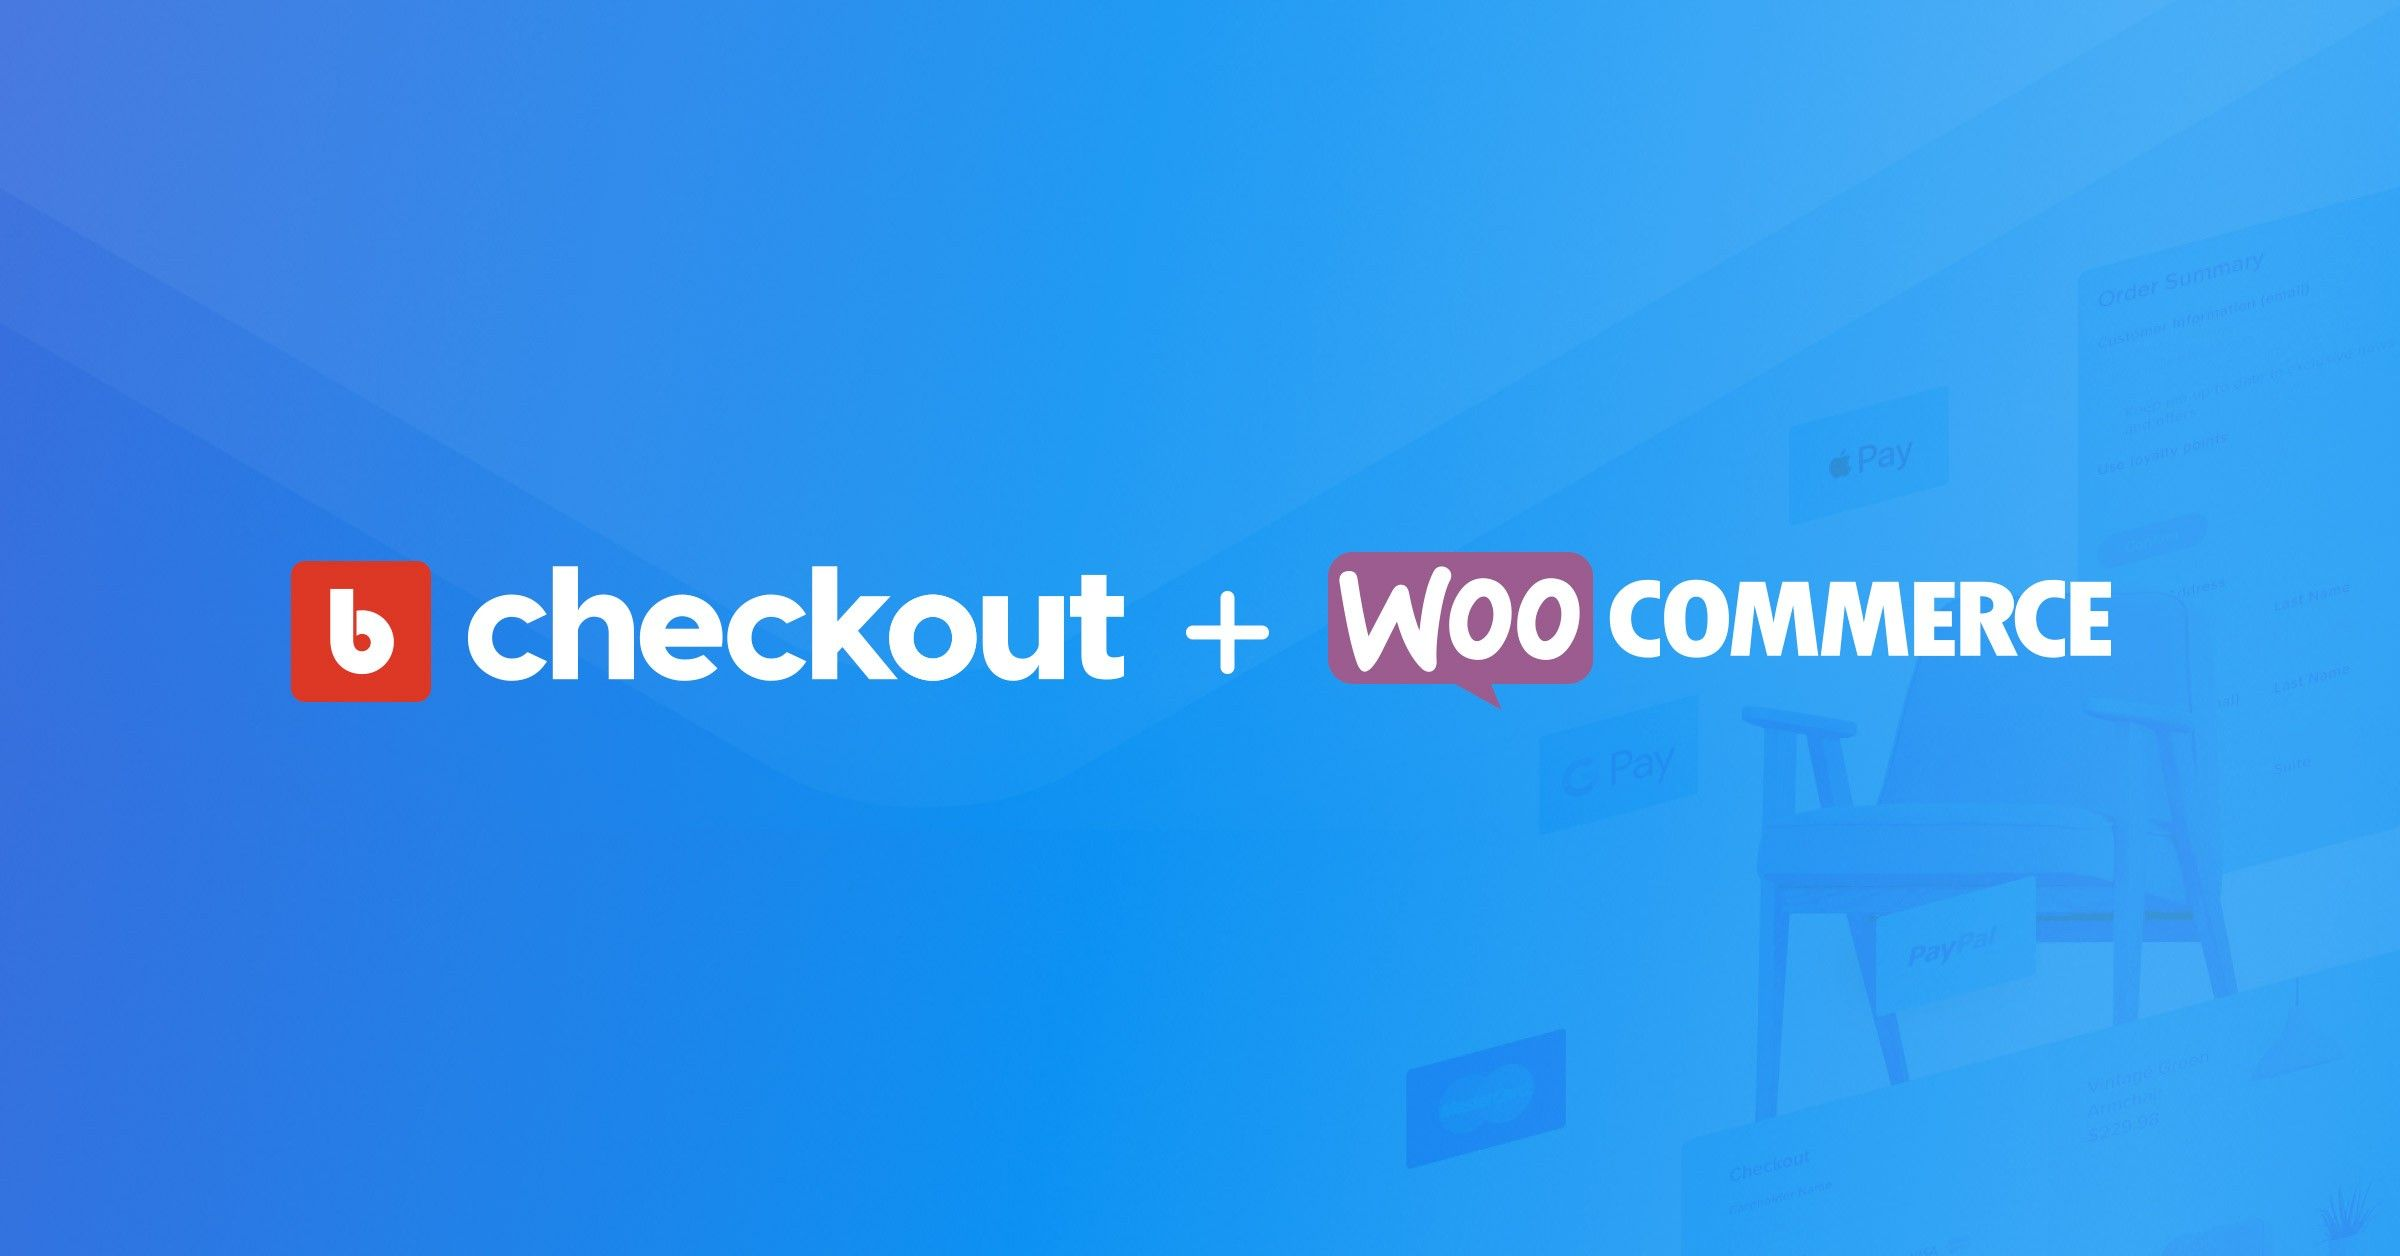 The Bold Checkout and WooCommerce logos over a blue transparent background